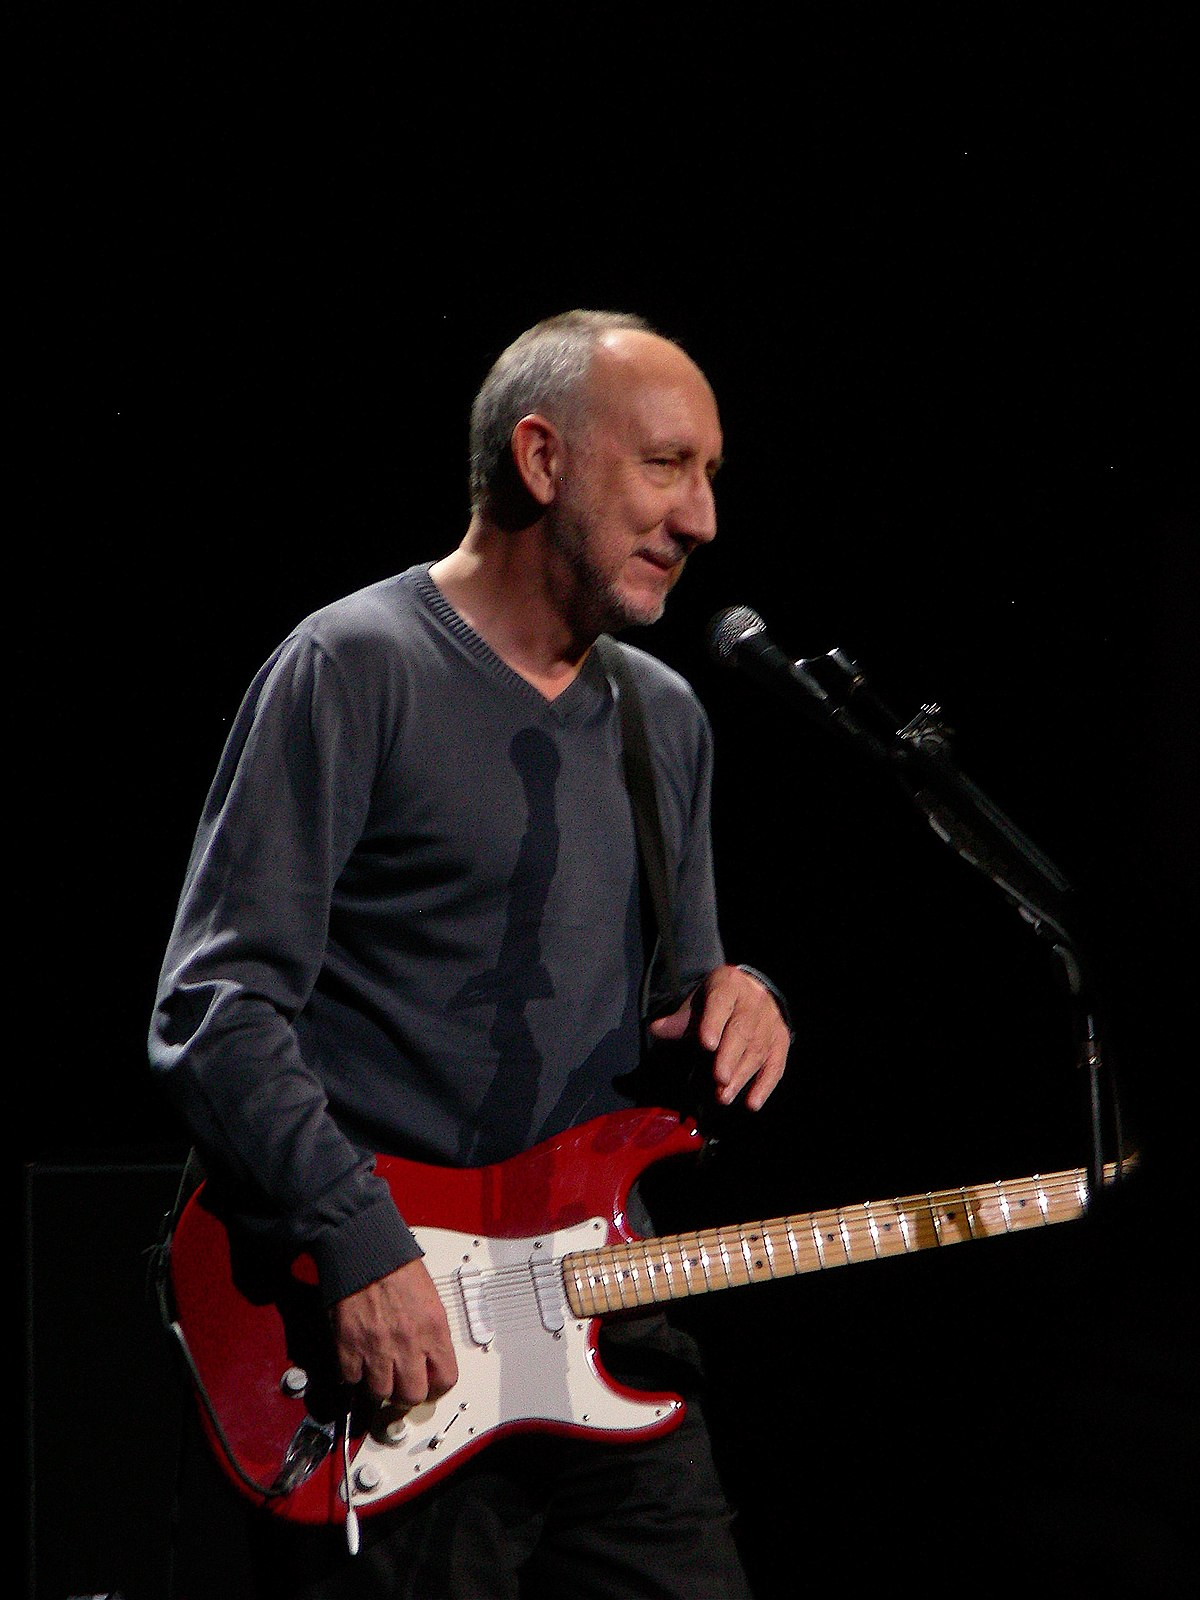 Pete townshend bisexual